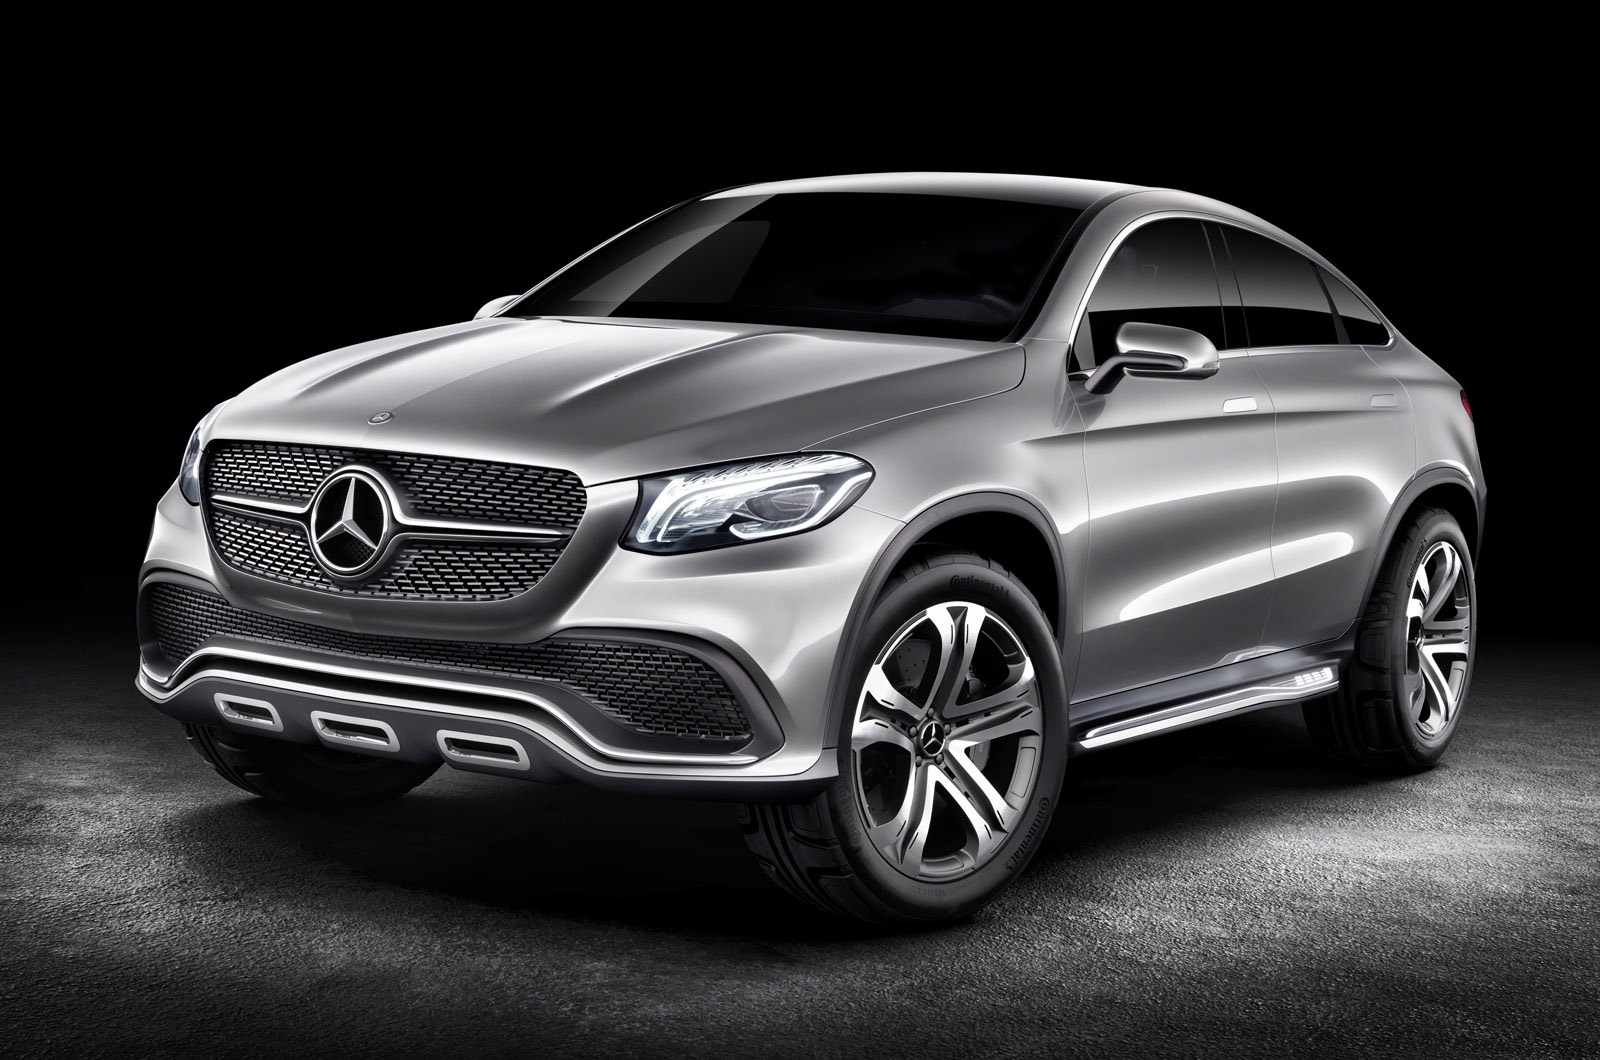 Mercedes Concept Coupe Suv Previews Automaker S Bmw X6 Rival